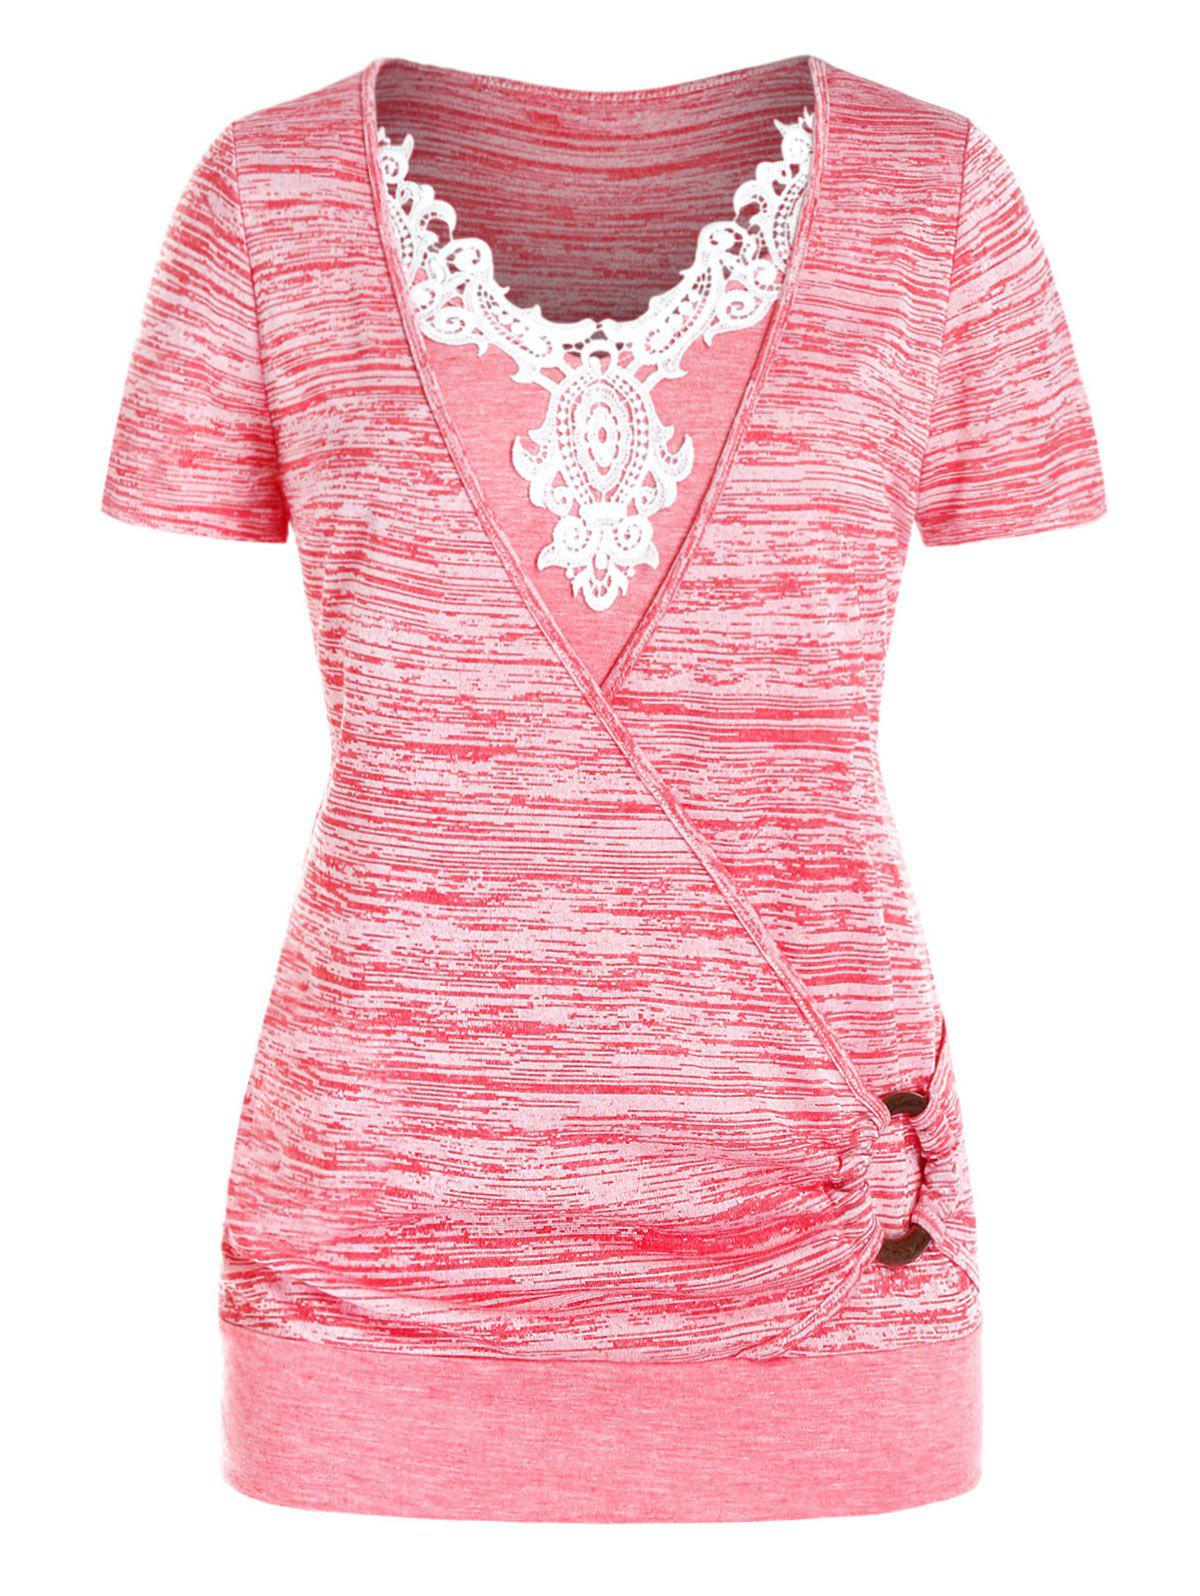 Plus Size Lace Applique O Ring Marled T Shirt - PINK ROSE 5X